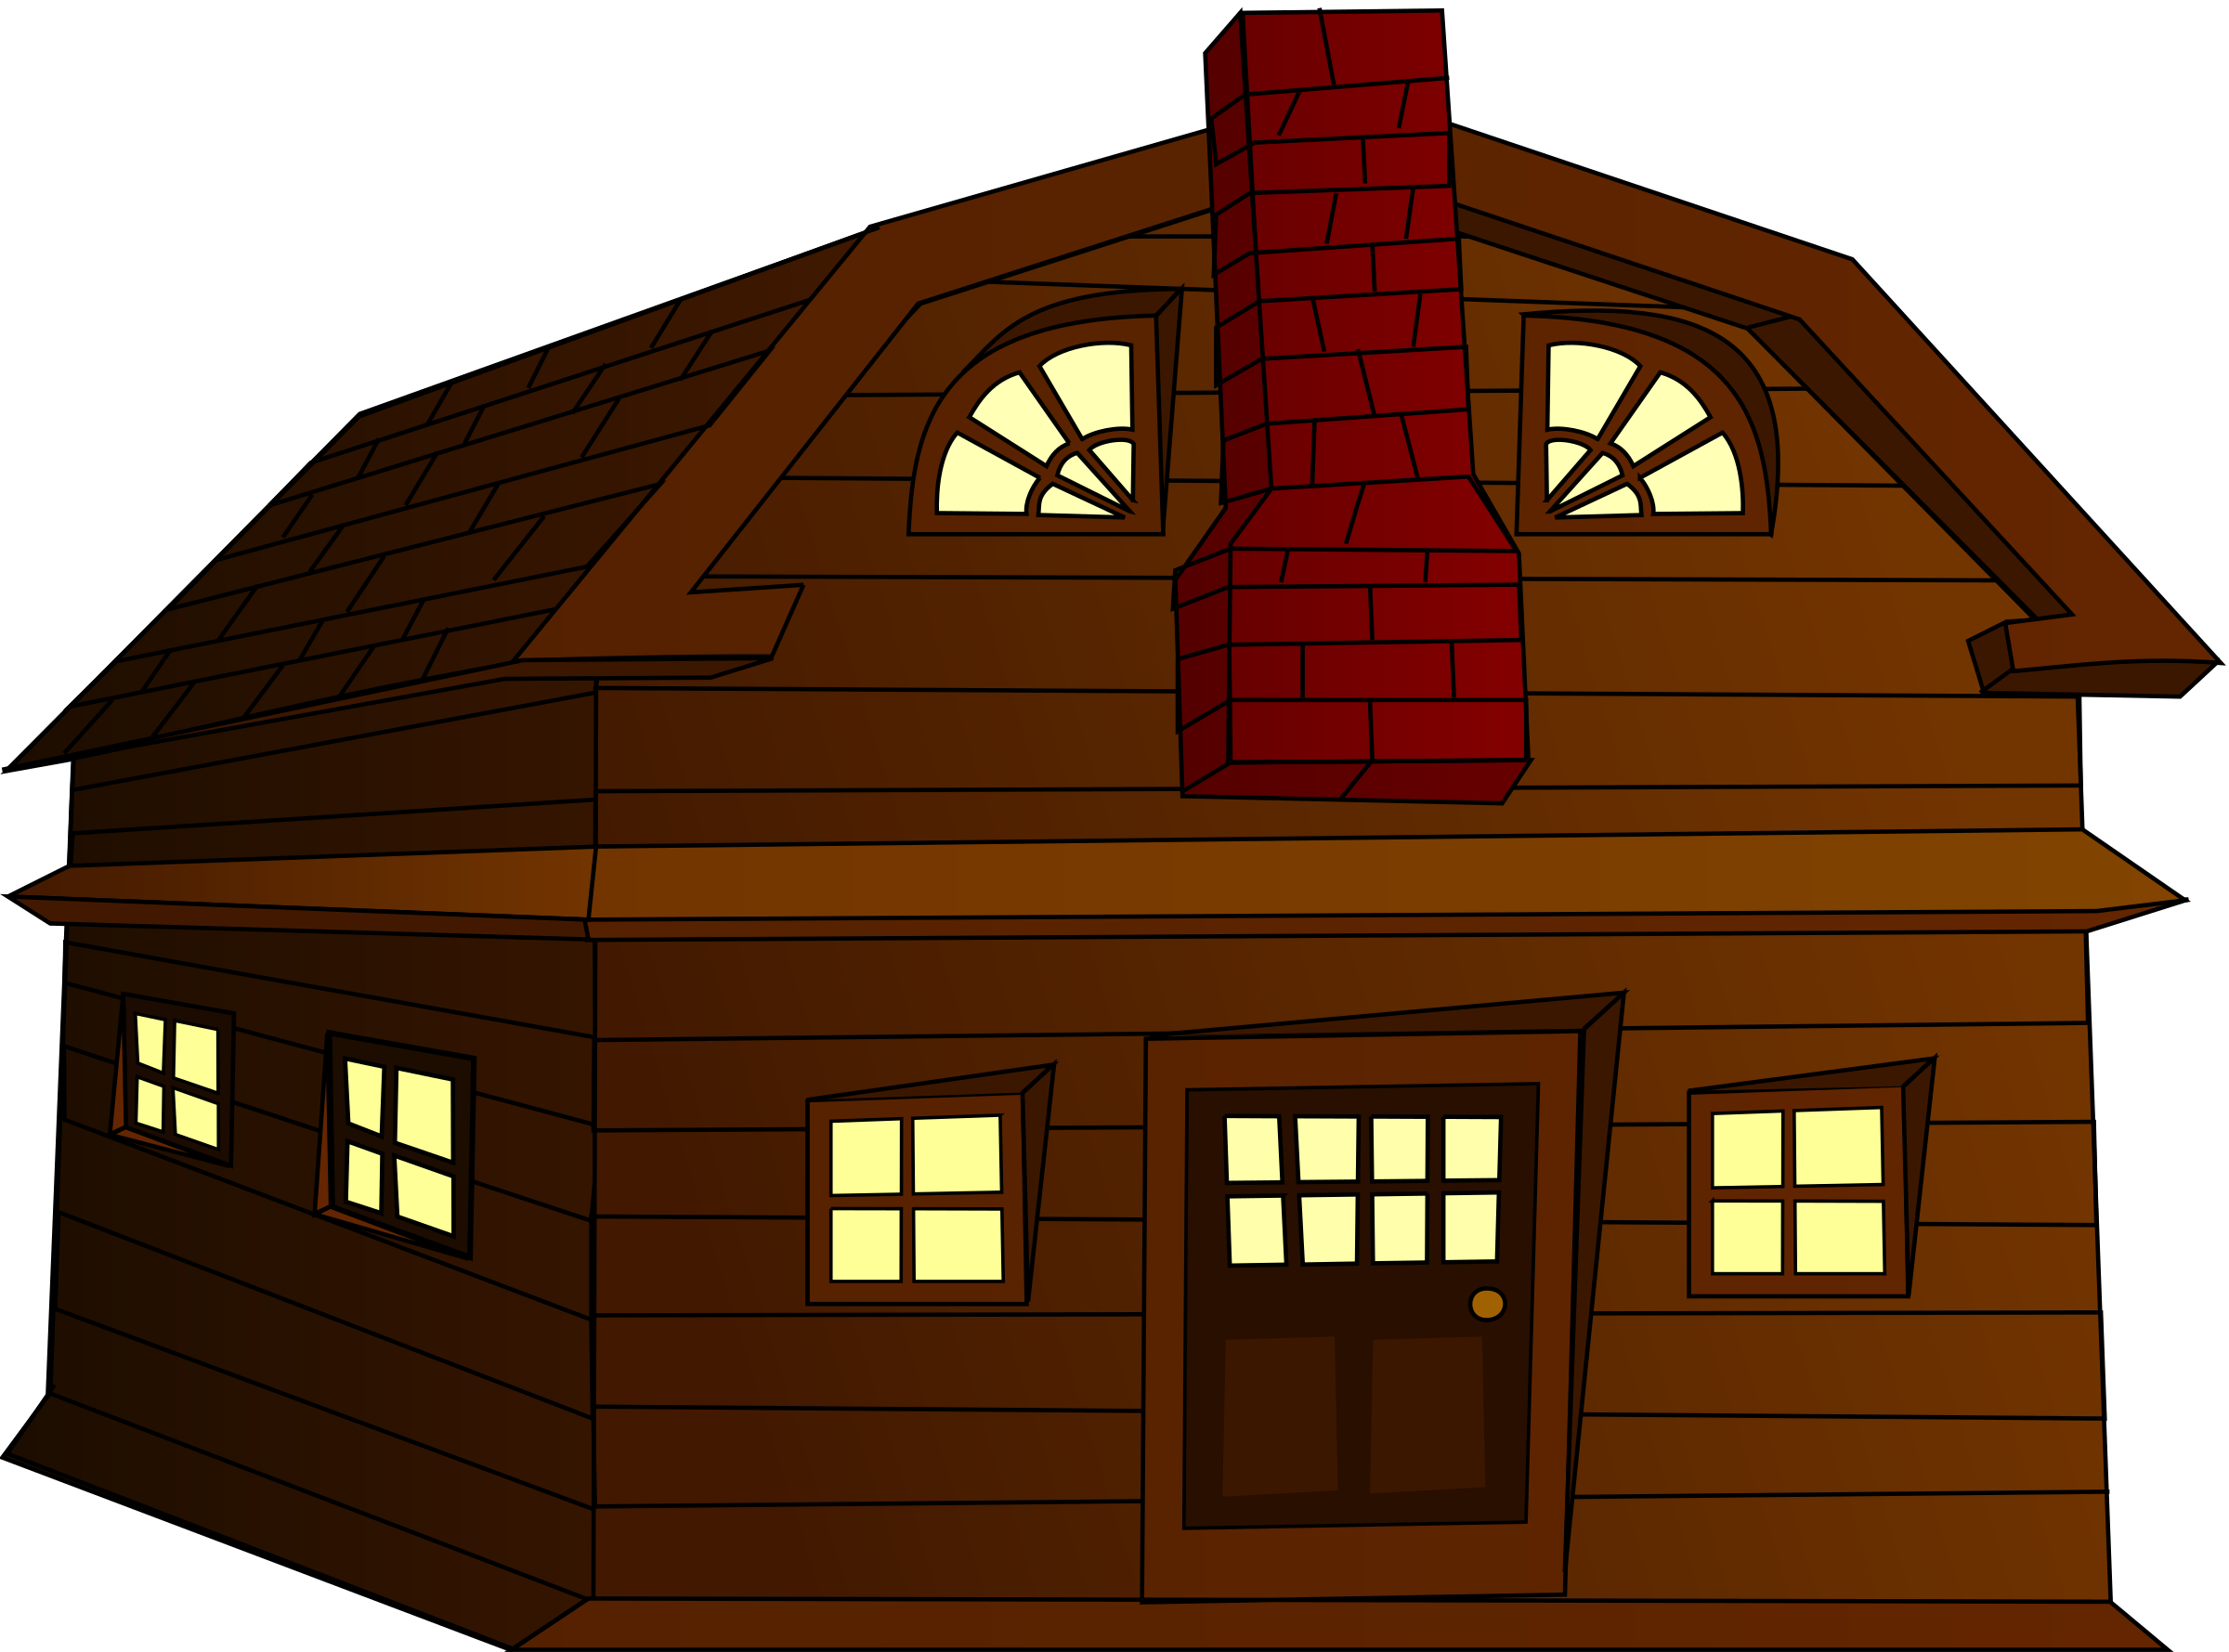 House clipart big and small Halloween Horror House Clipart Halloween